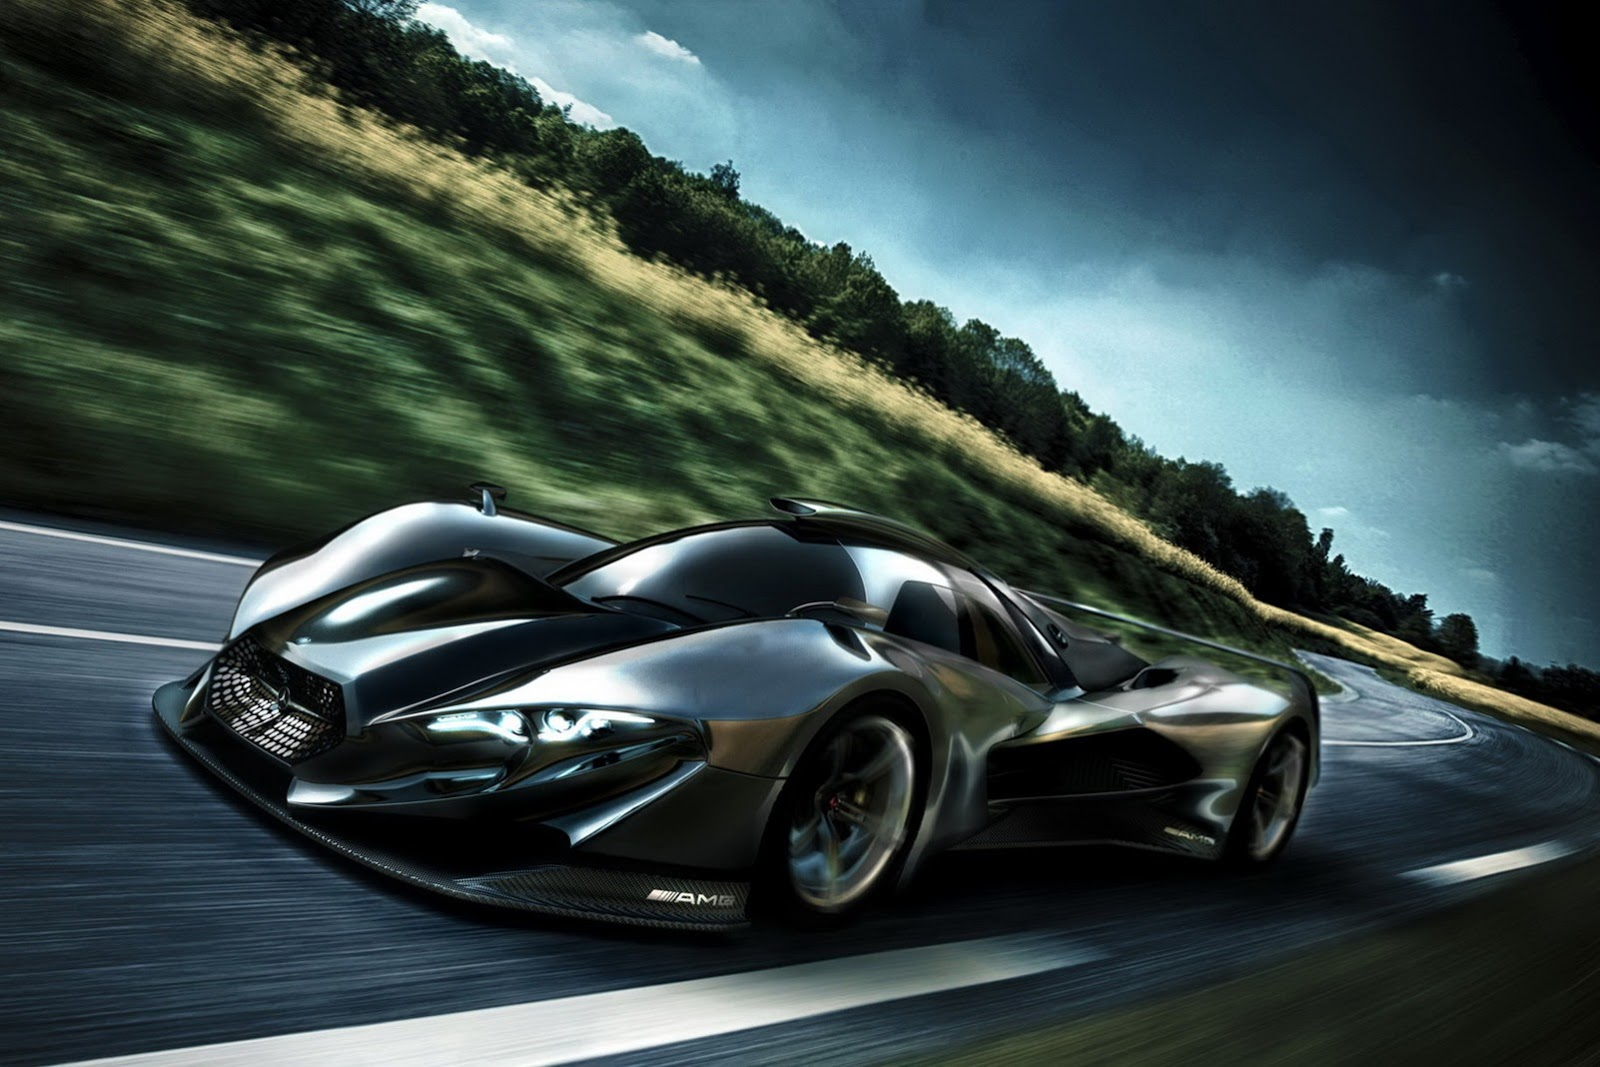 Rb Car Company >> Mercedes-AMG Apparently Developing 1,300hp Hypercar For 2017 | Carscoops